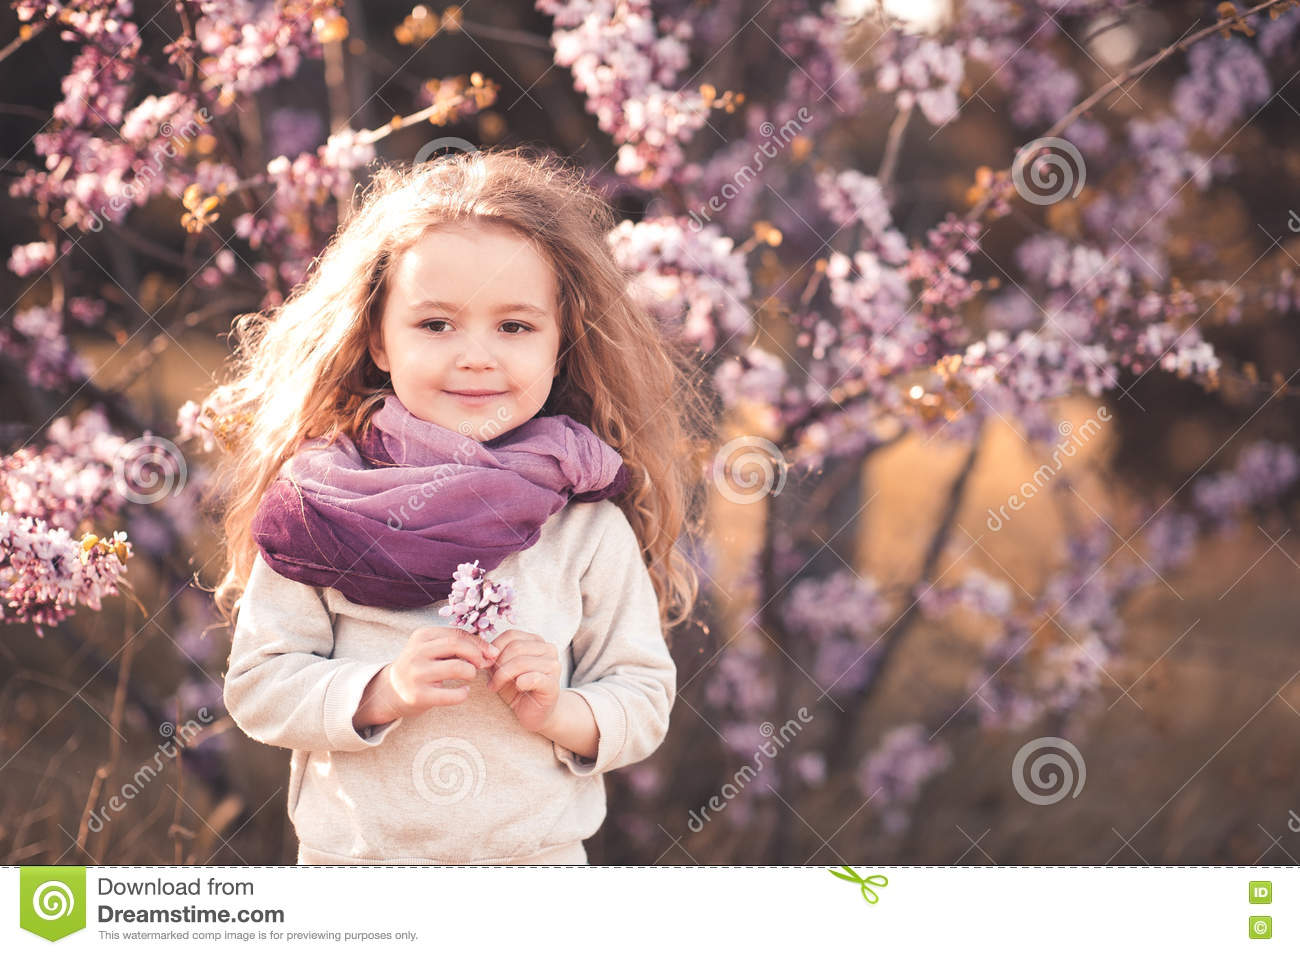 pictures of cute babies with flowers - hd wallpapers images